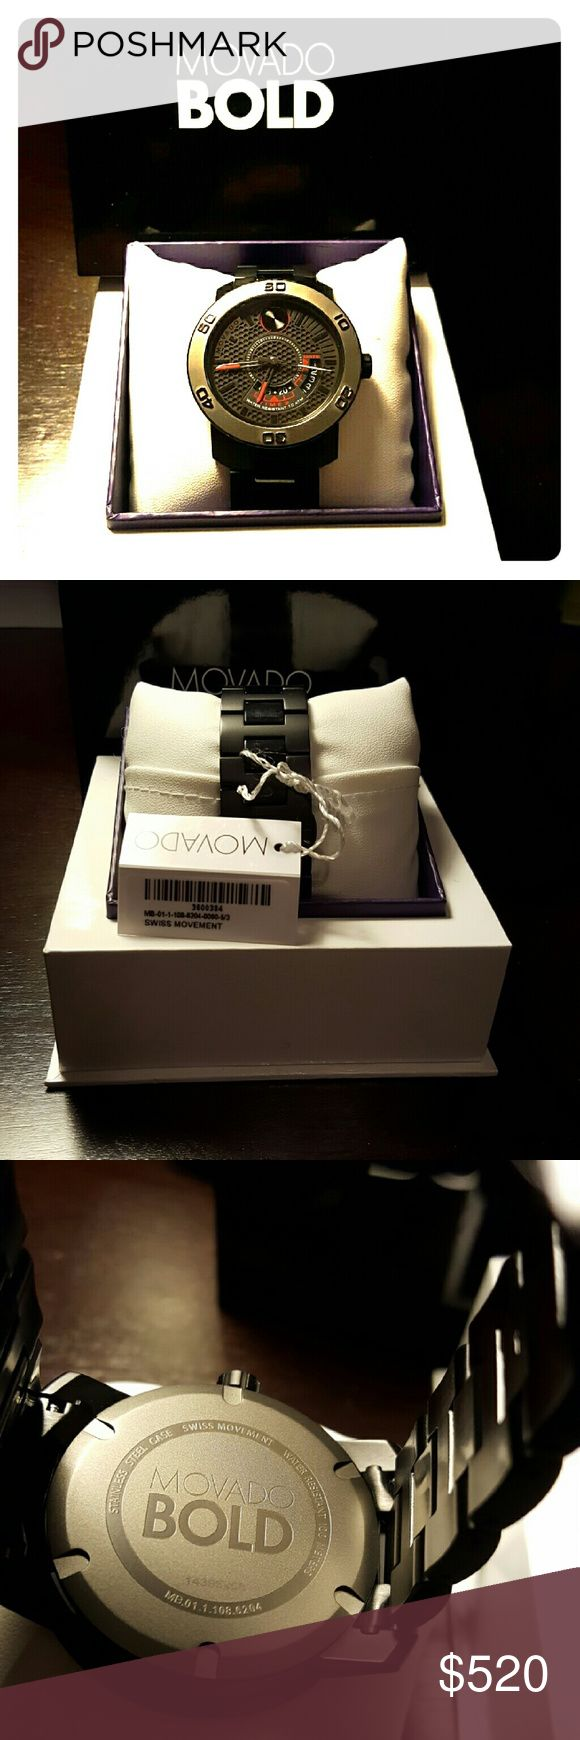 Mavodo Blod Never worn brand new got it as a gift just not my kind of watch. Offers are welcome. Movado Accessories Watches